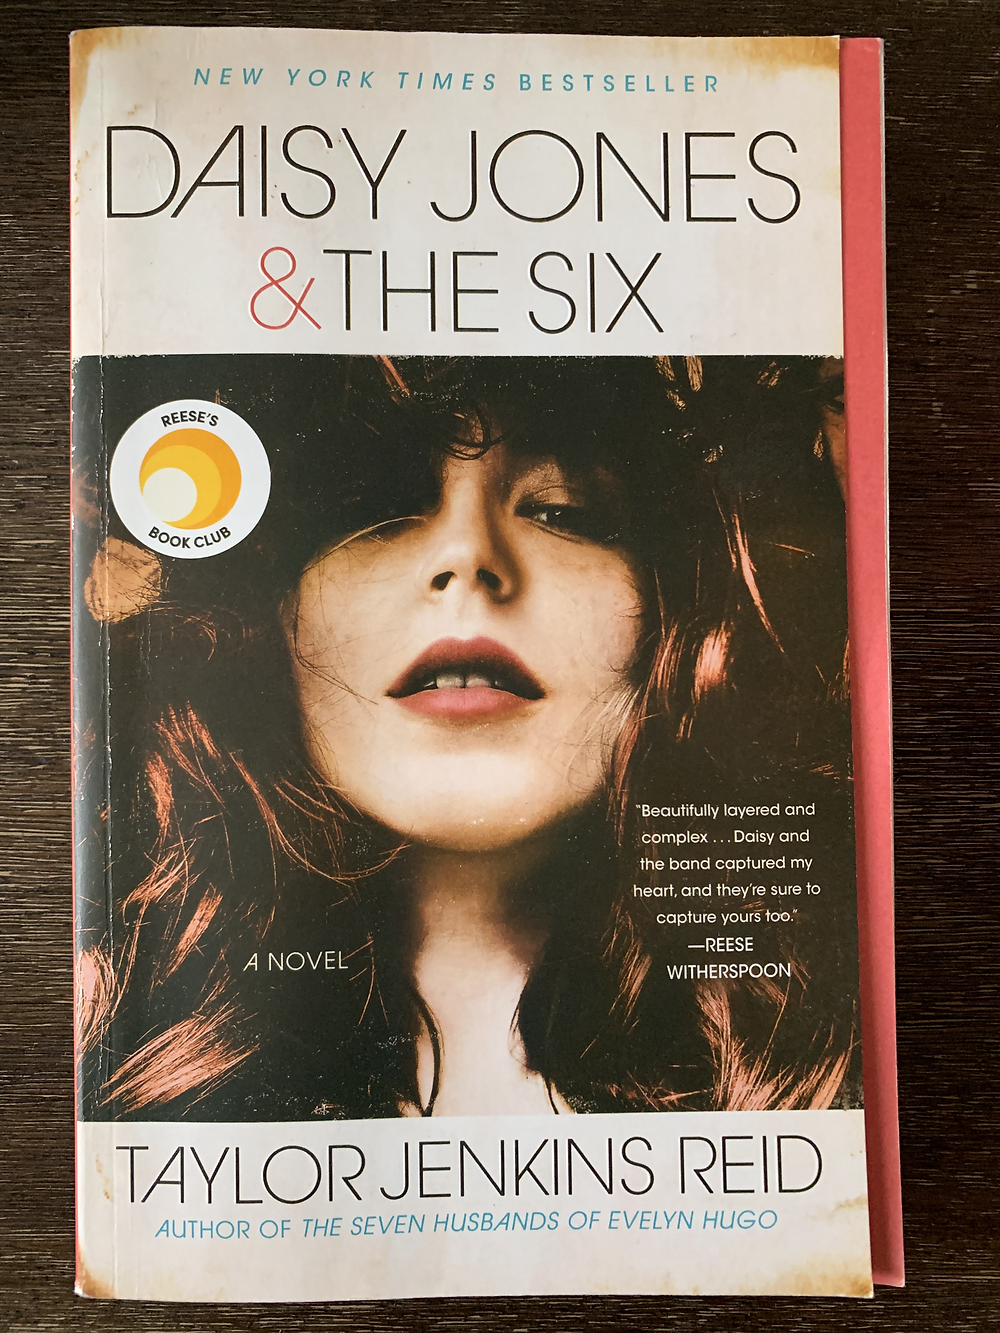 The book cover of Daisy Jones & The Six, with a brunette girl on the cover